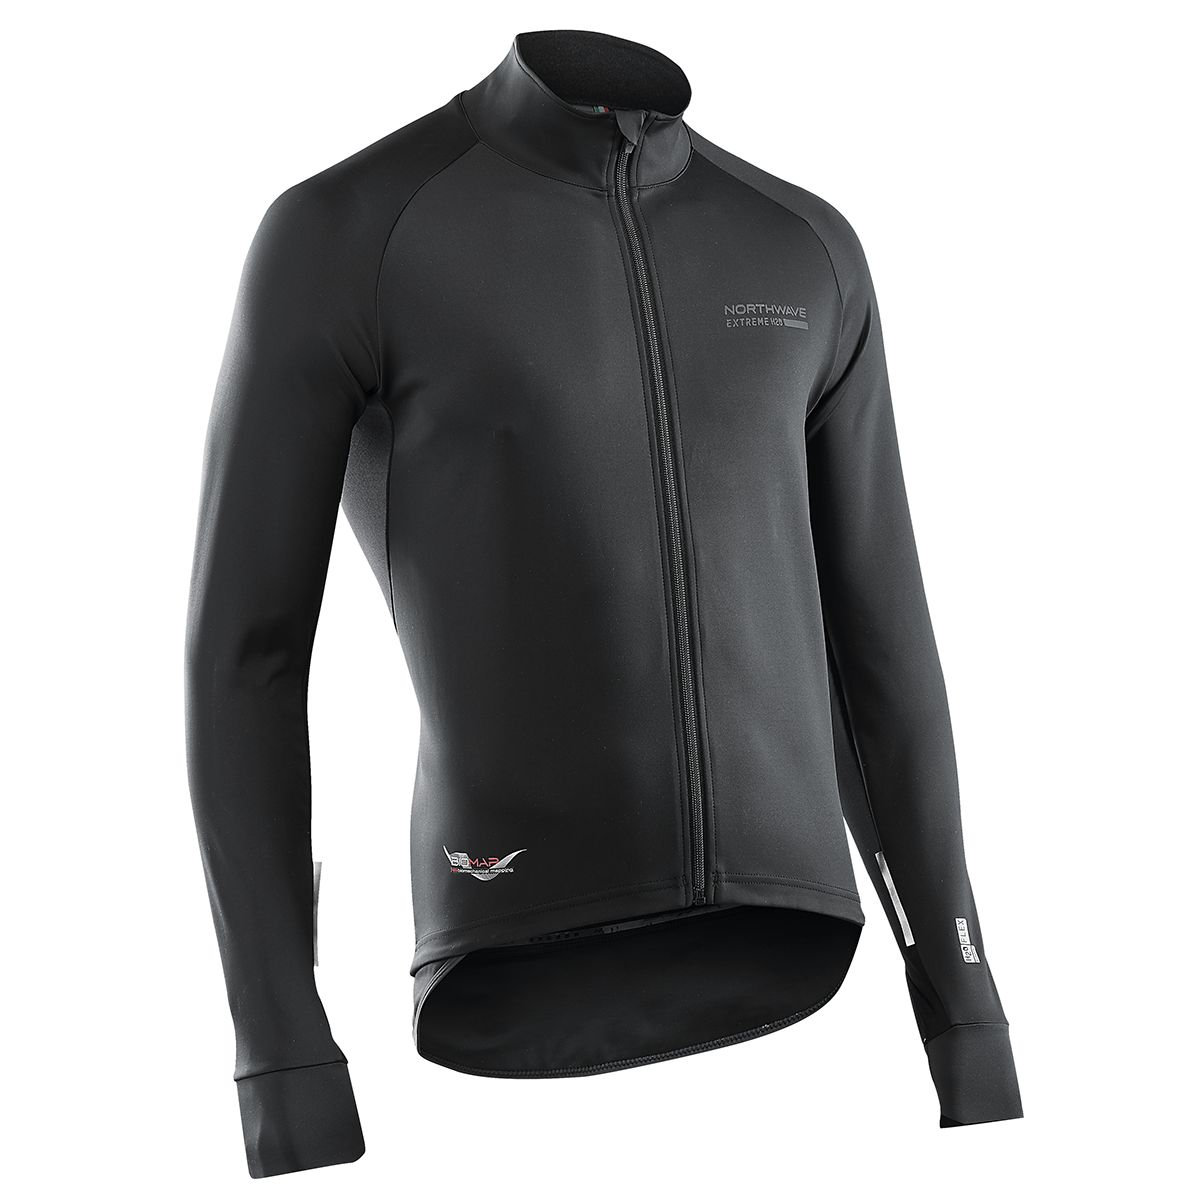 EXTREME H2O LIGHT JACKET TOTAL PROTECTION LS